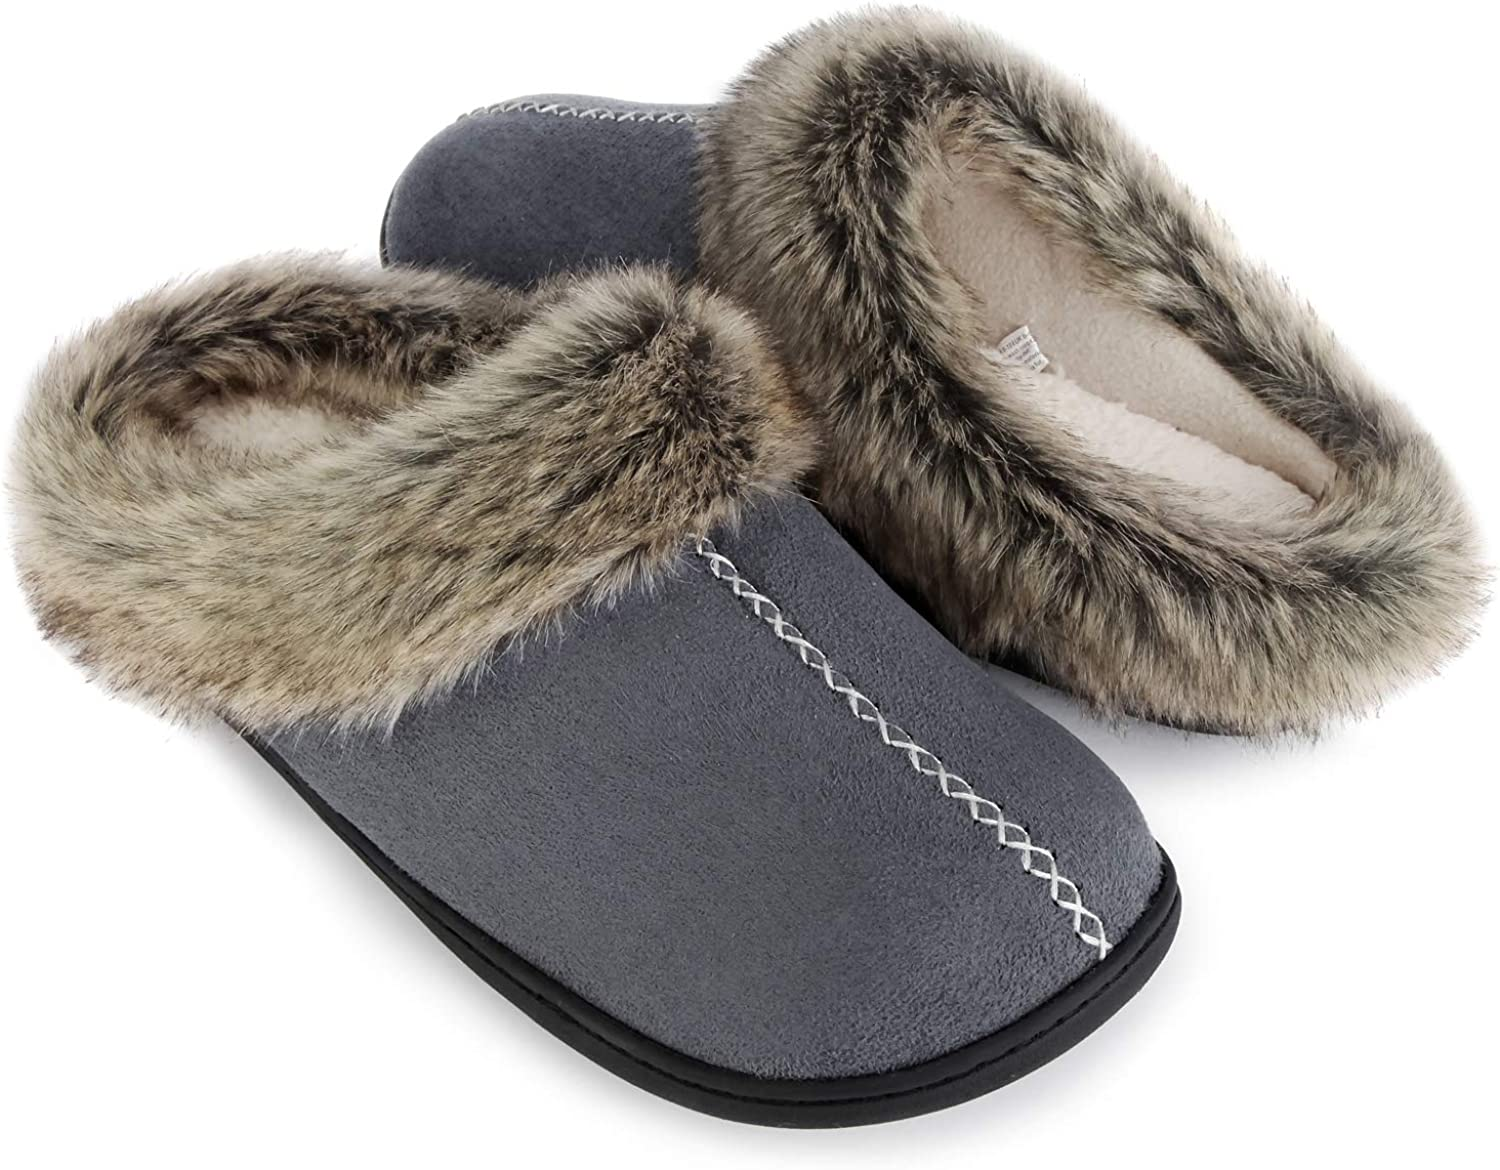 Casual Micro Suede Slip on Clog Mule House Shoes with Indoor Outdoor Anti-Skid Hard Rubber Sole ULTRAIDEAS Mens Cozy Memory Foam Slippers with Warm Fleece Lining and Fuzzy Faux Fur Collar